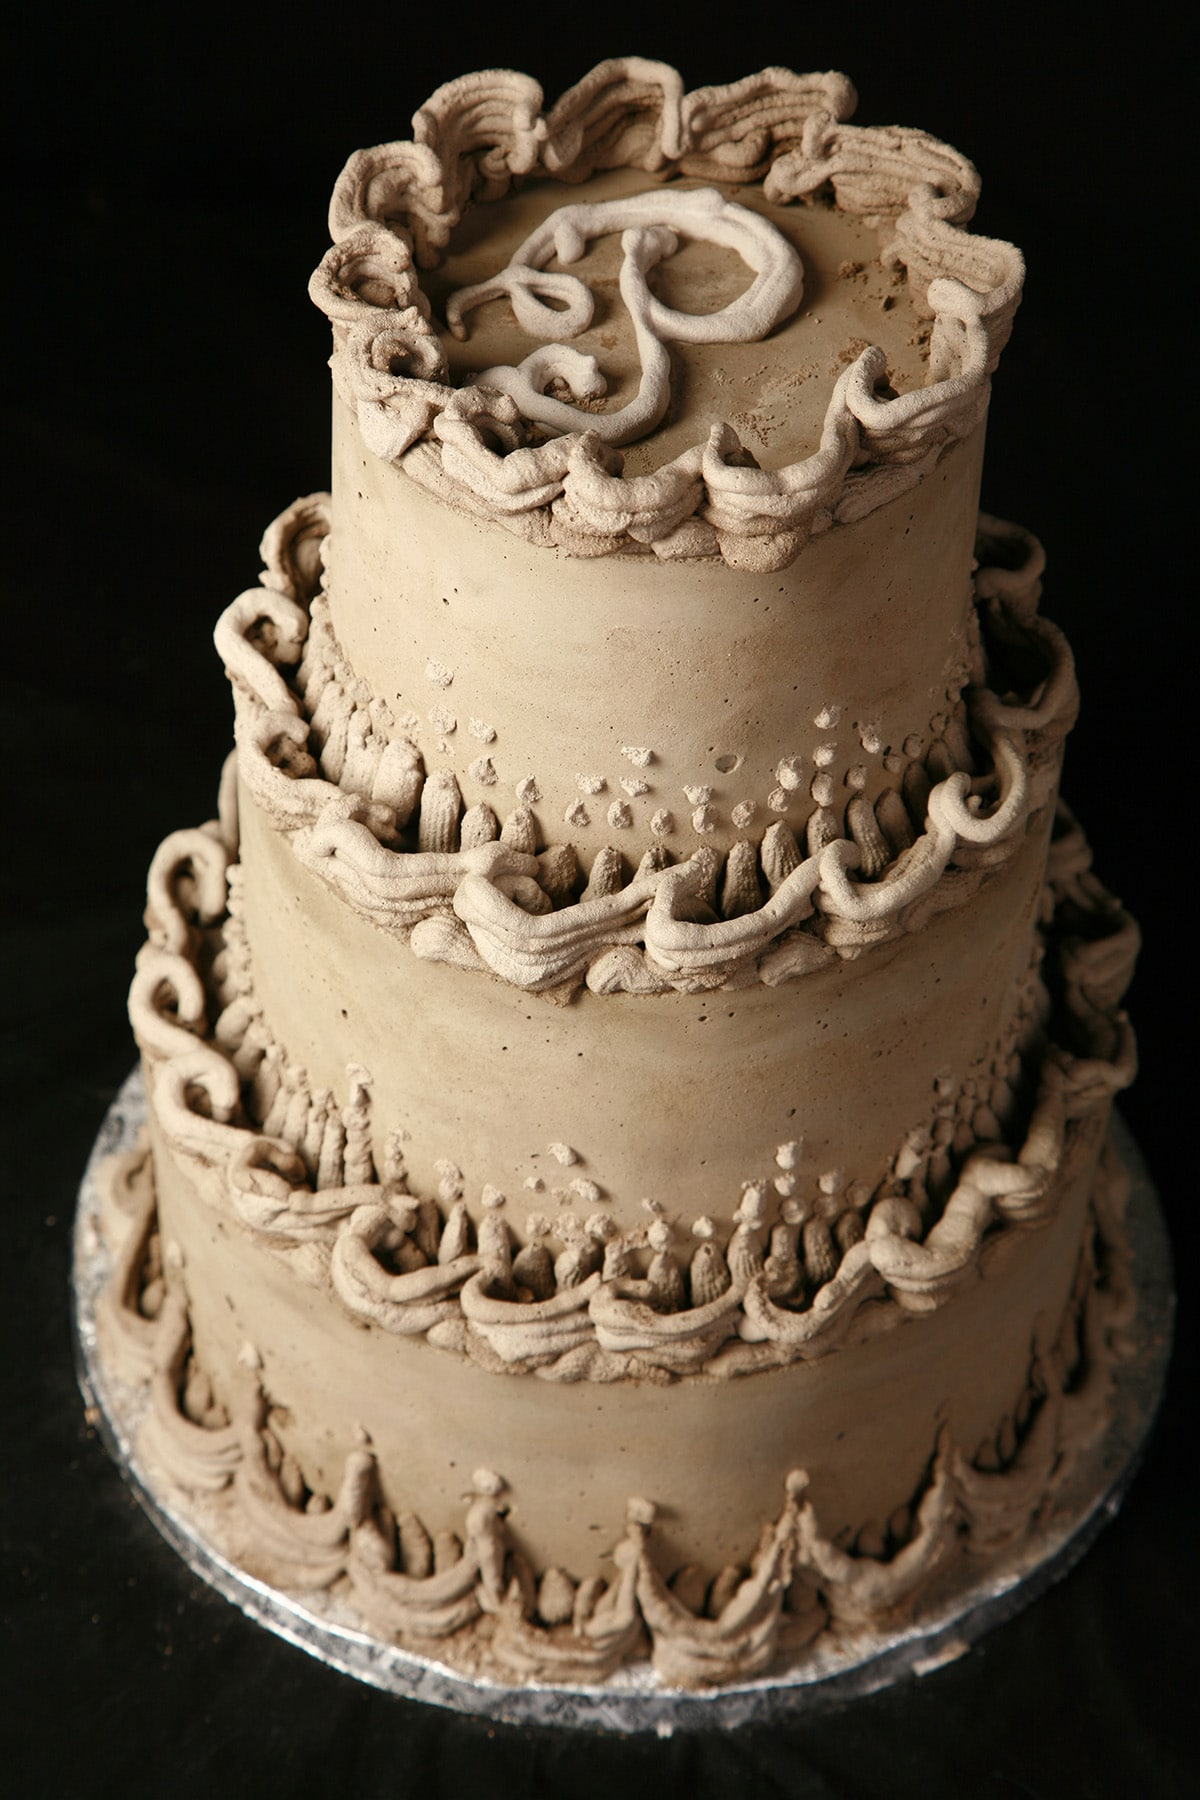 A 3 tiered wedding cake - Lambeth style - completely made from cement.